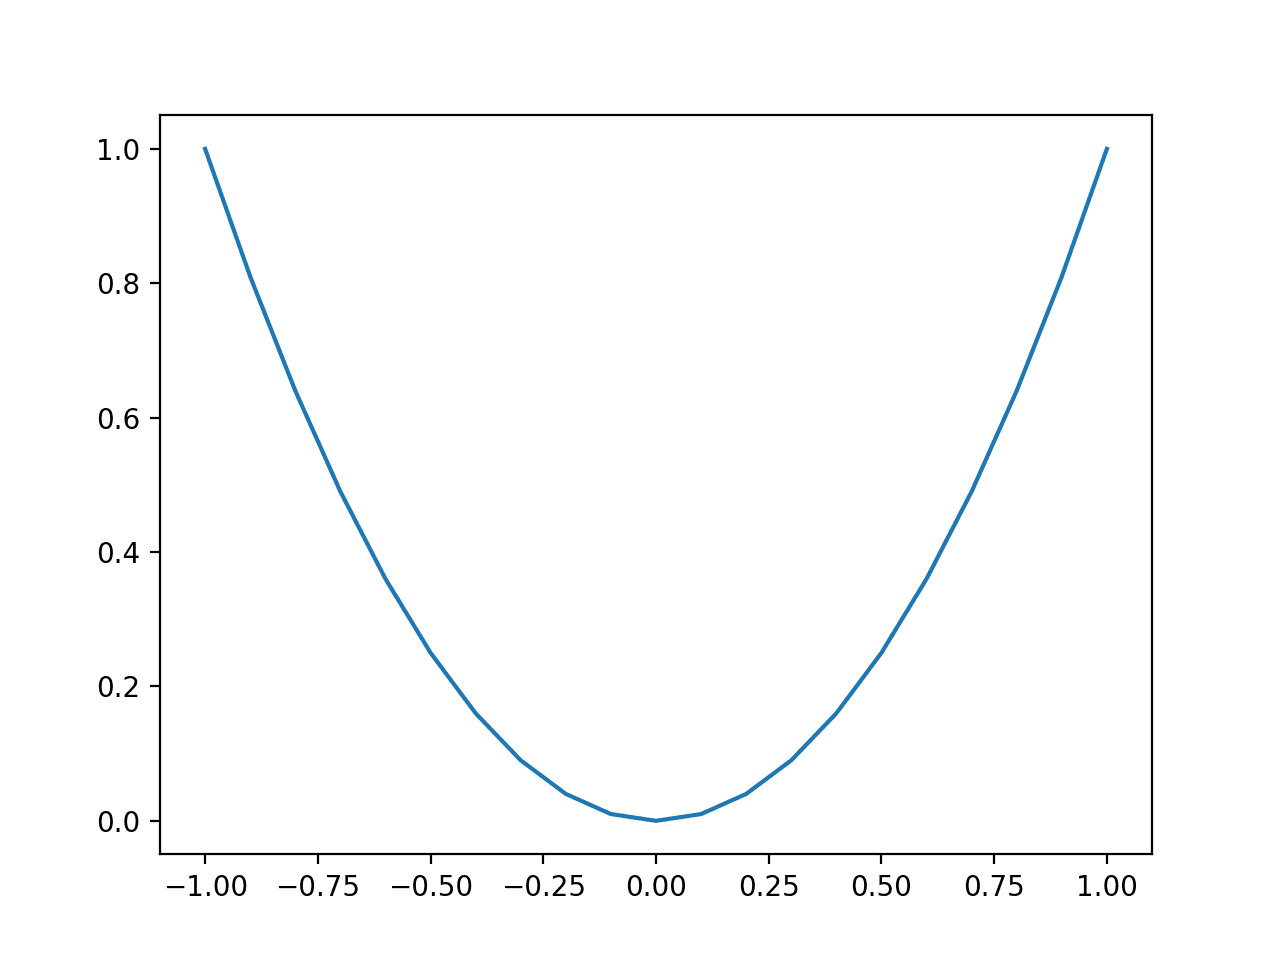 Line Plot of Simple One Dimensional Function